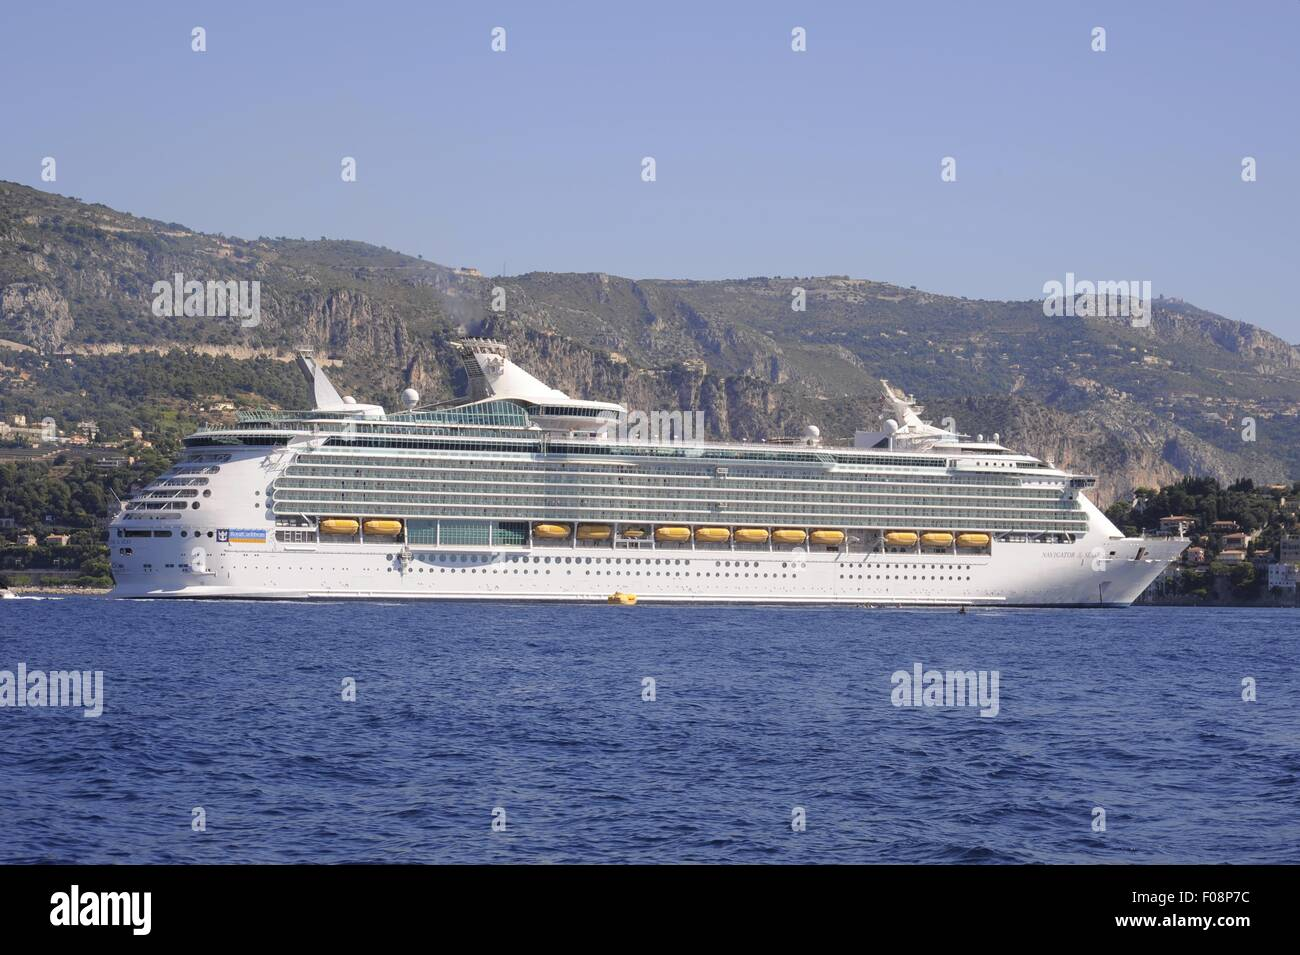 France, French Riviera, cruise ship in the bay of Villefranche sur Mer - Stock Image